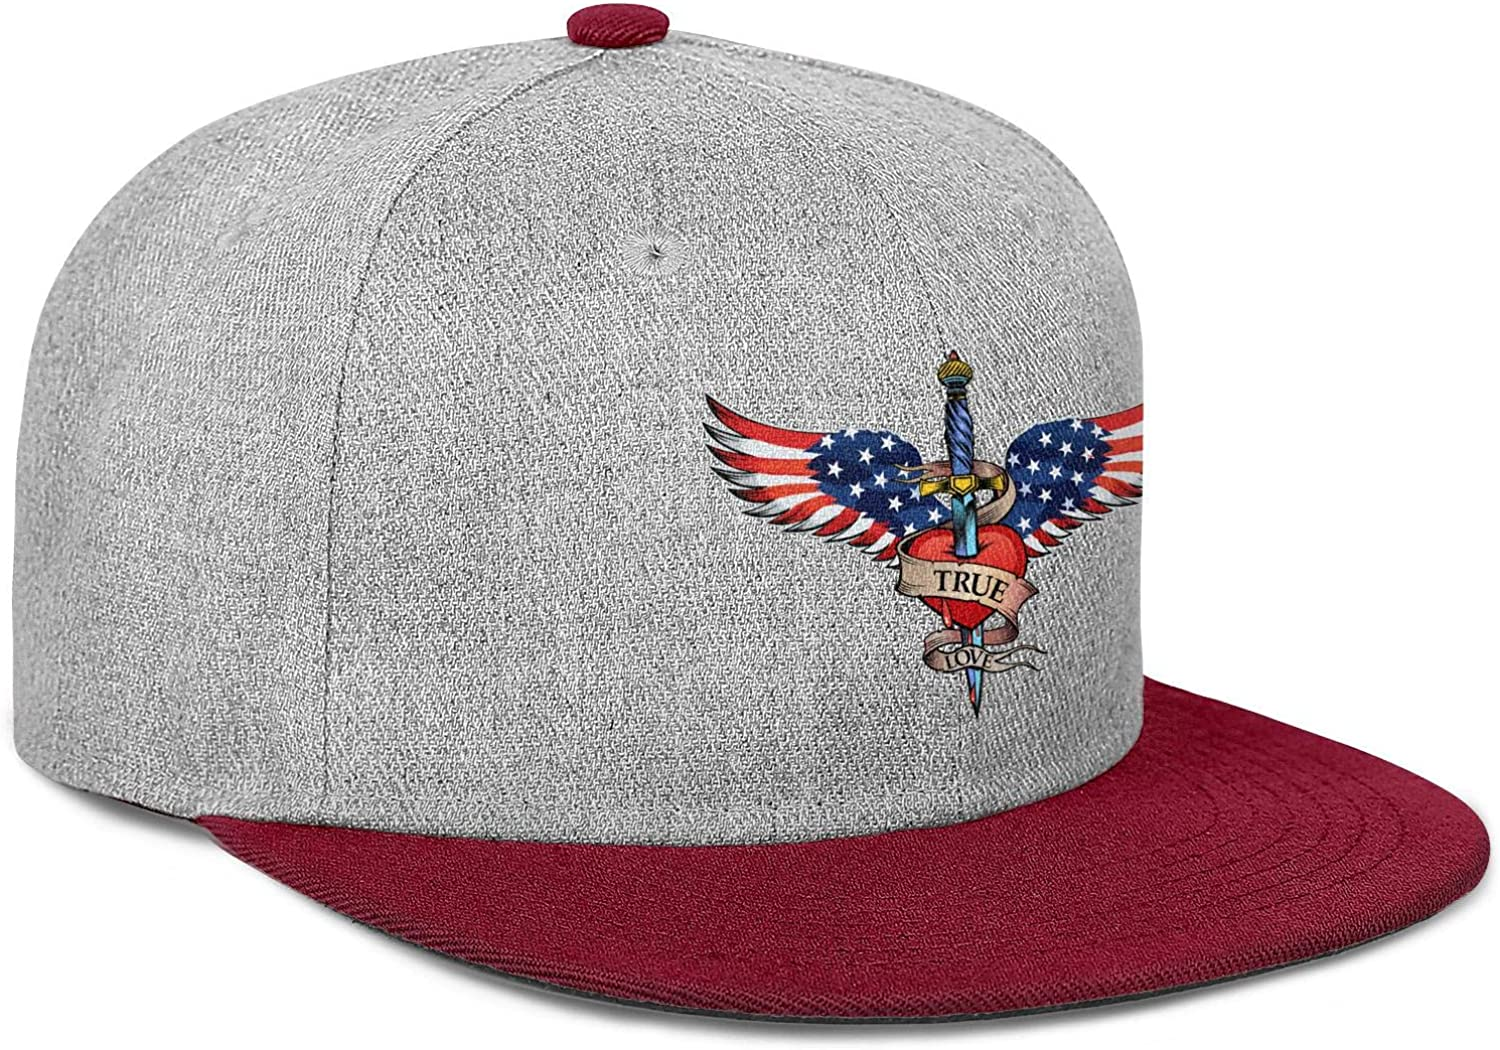 FYFYOK Mens Women Flat Hat USA Flag Wing and Heart Snapback Adjustable Caps